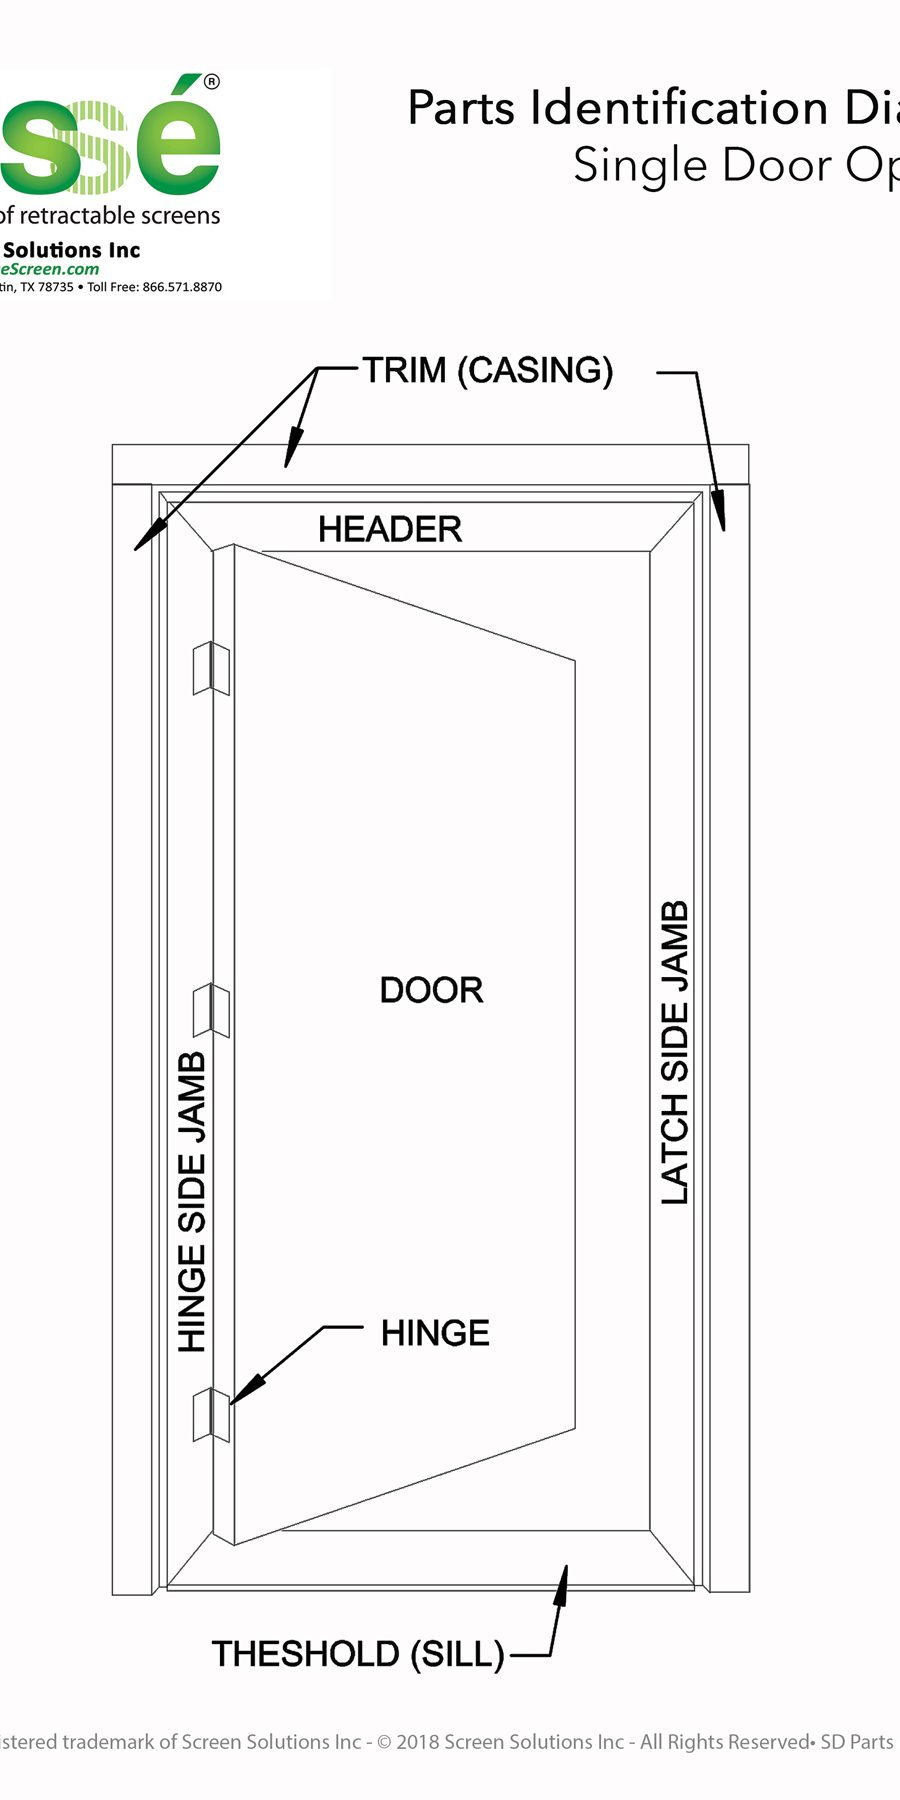 single door part identification drawing